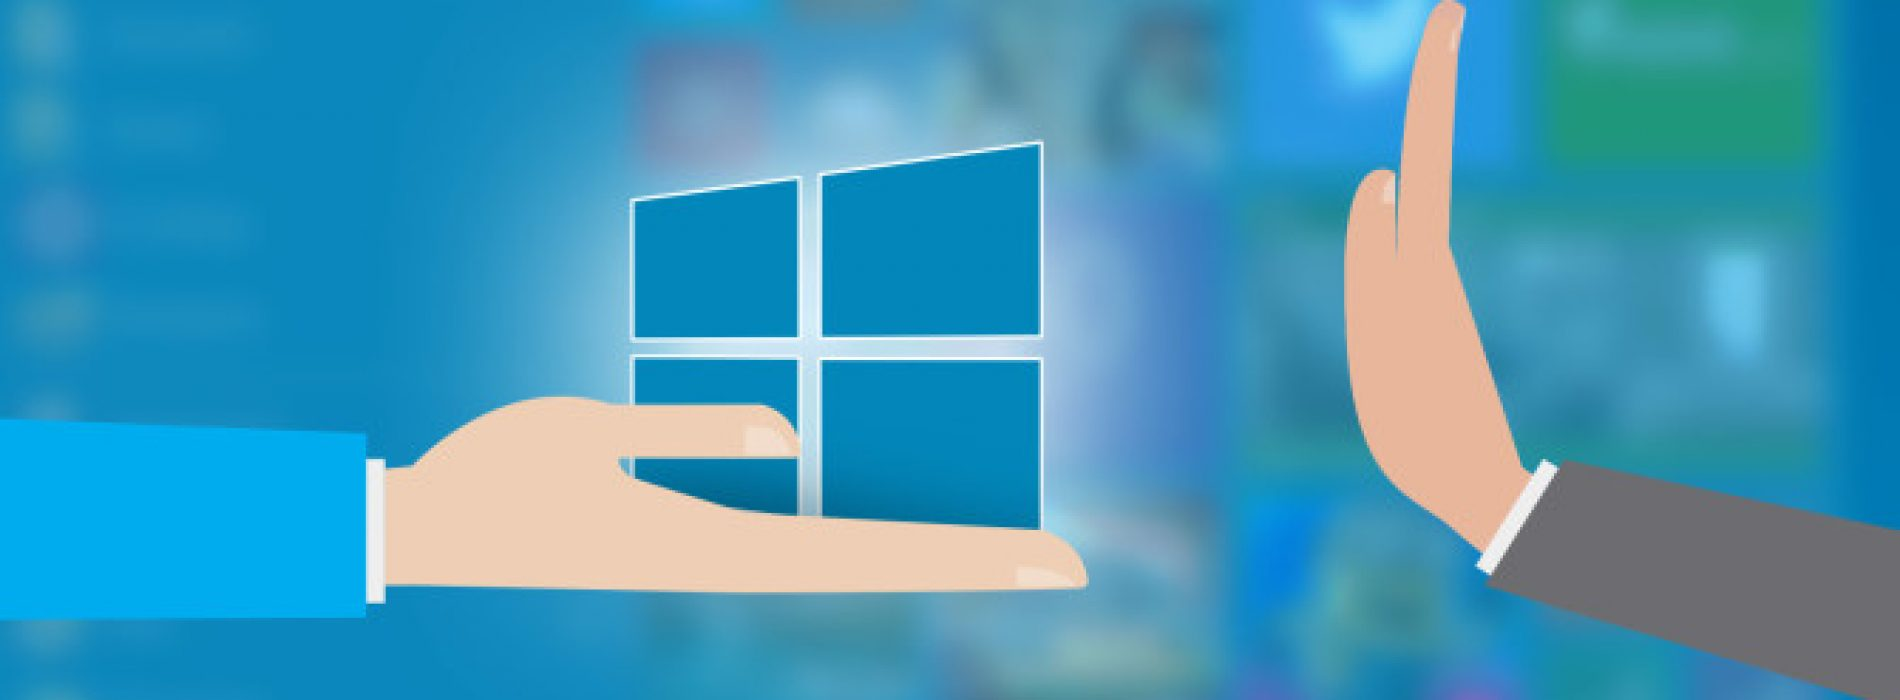 Windows Kod 37 Hatası Çözümü